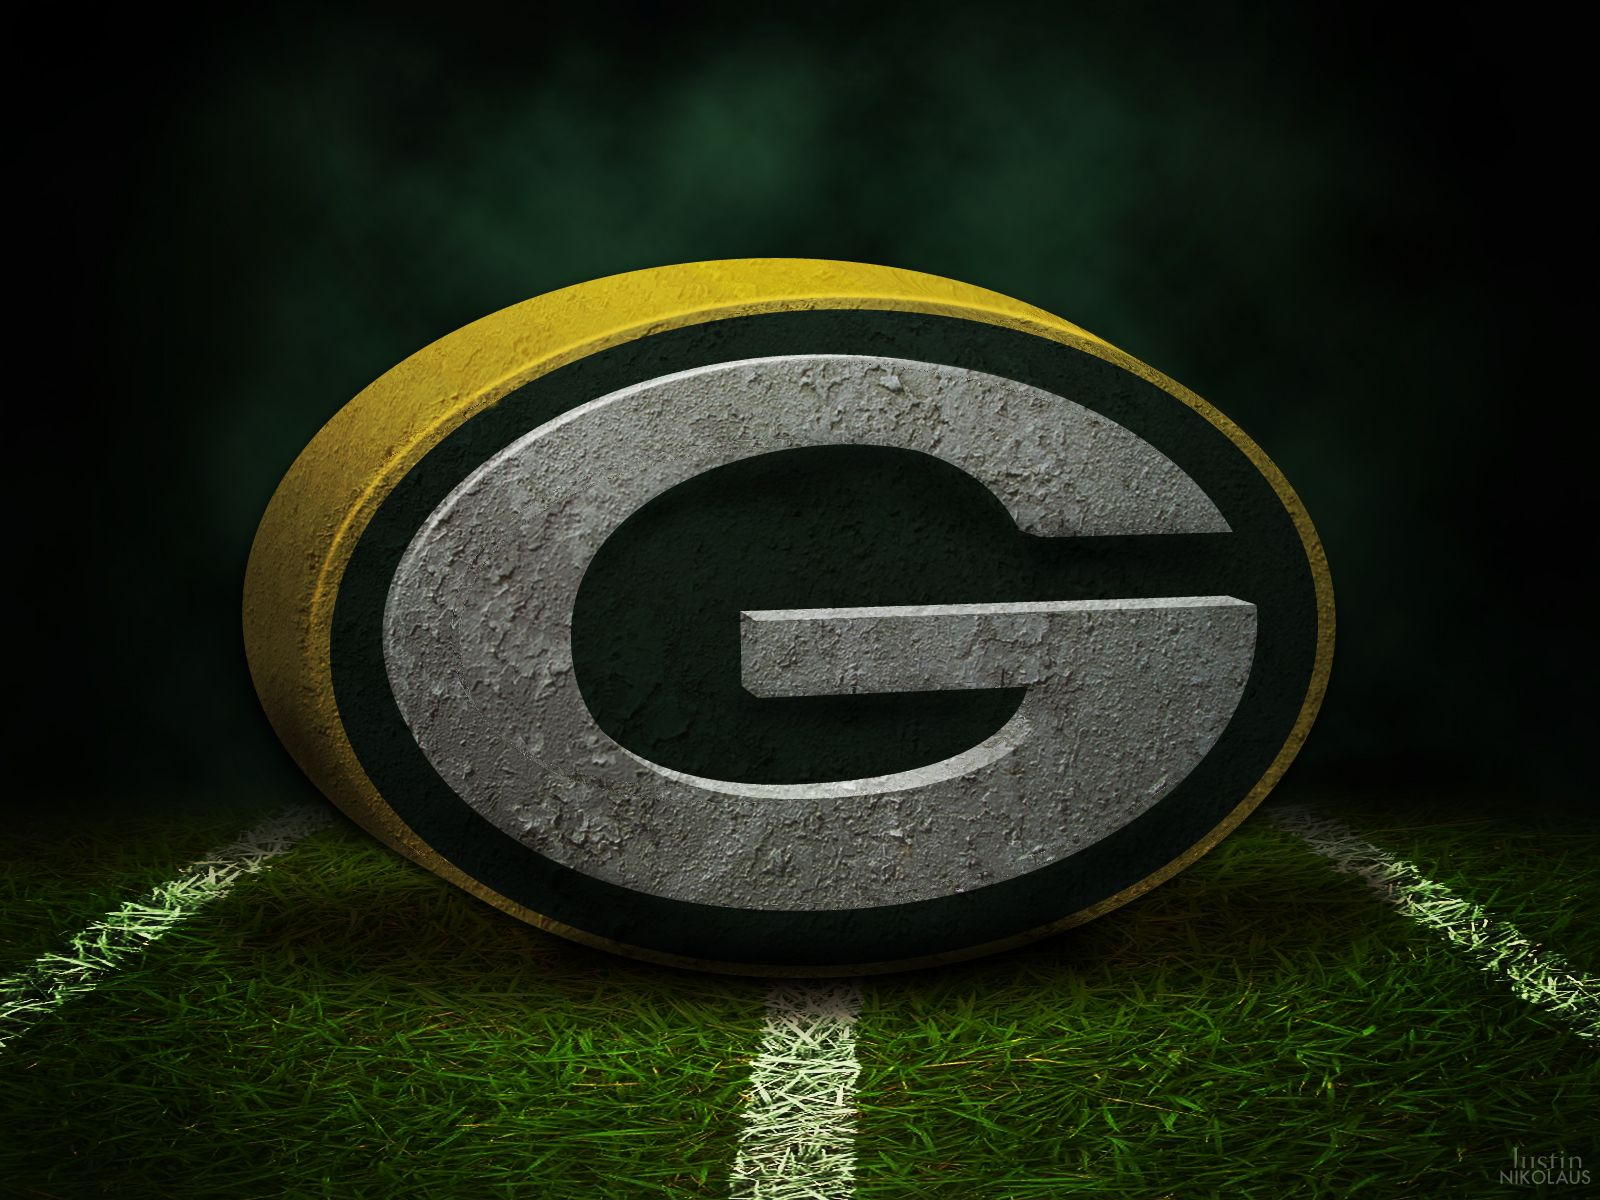 1000+ images about Football on Pinterest | Green bay packers, Green bay and ...